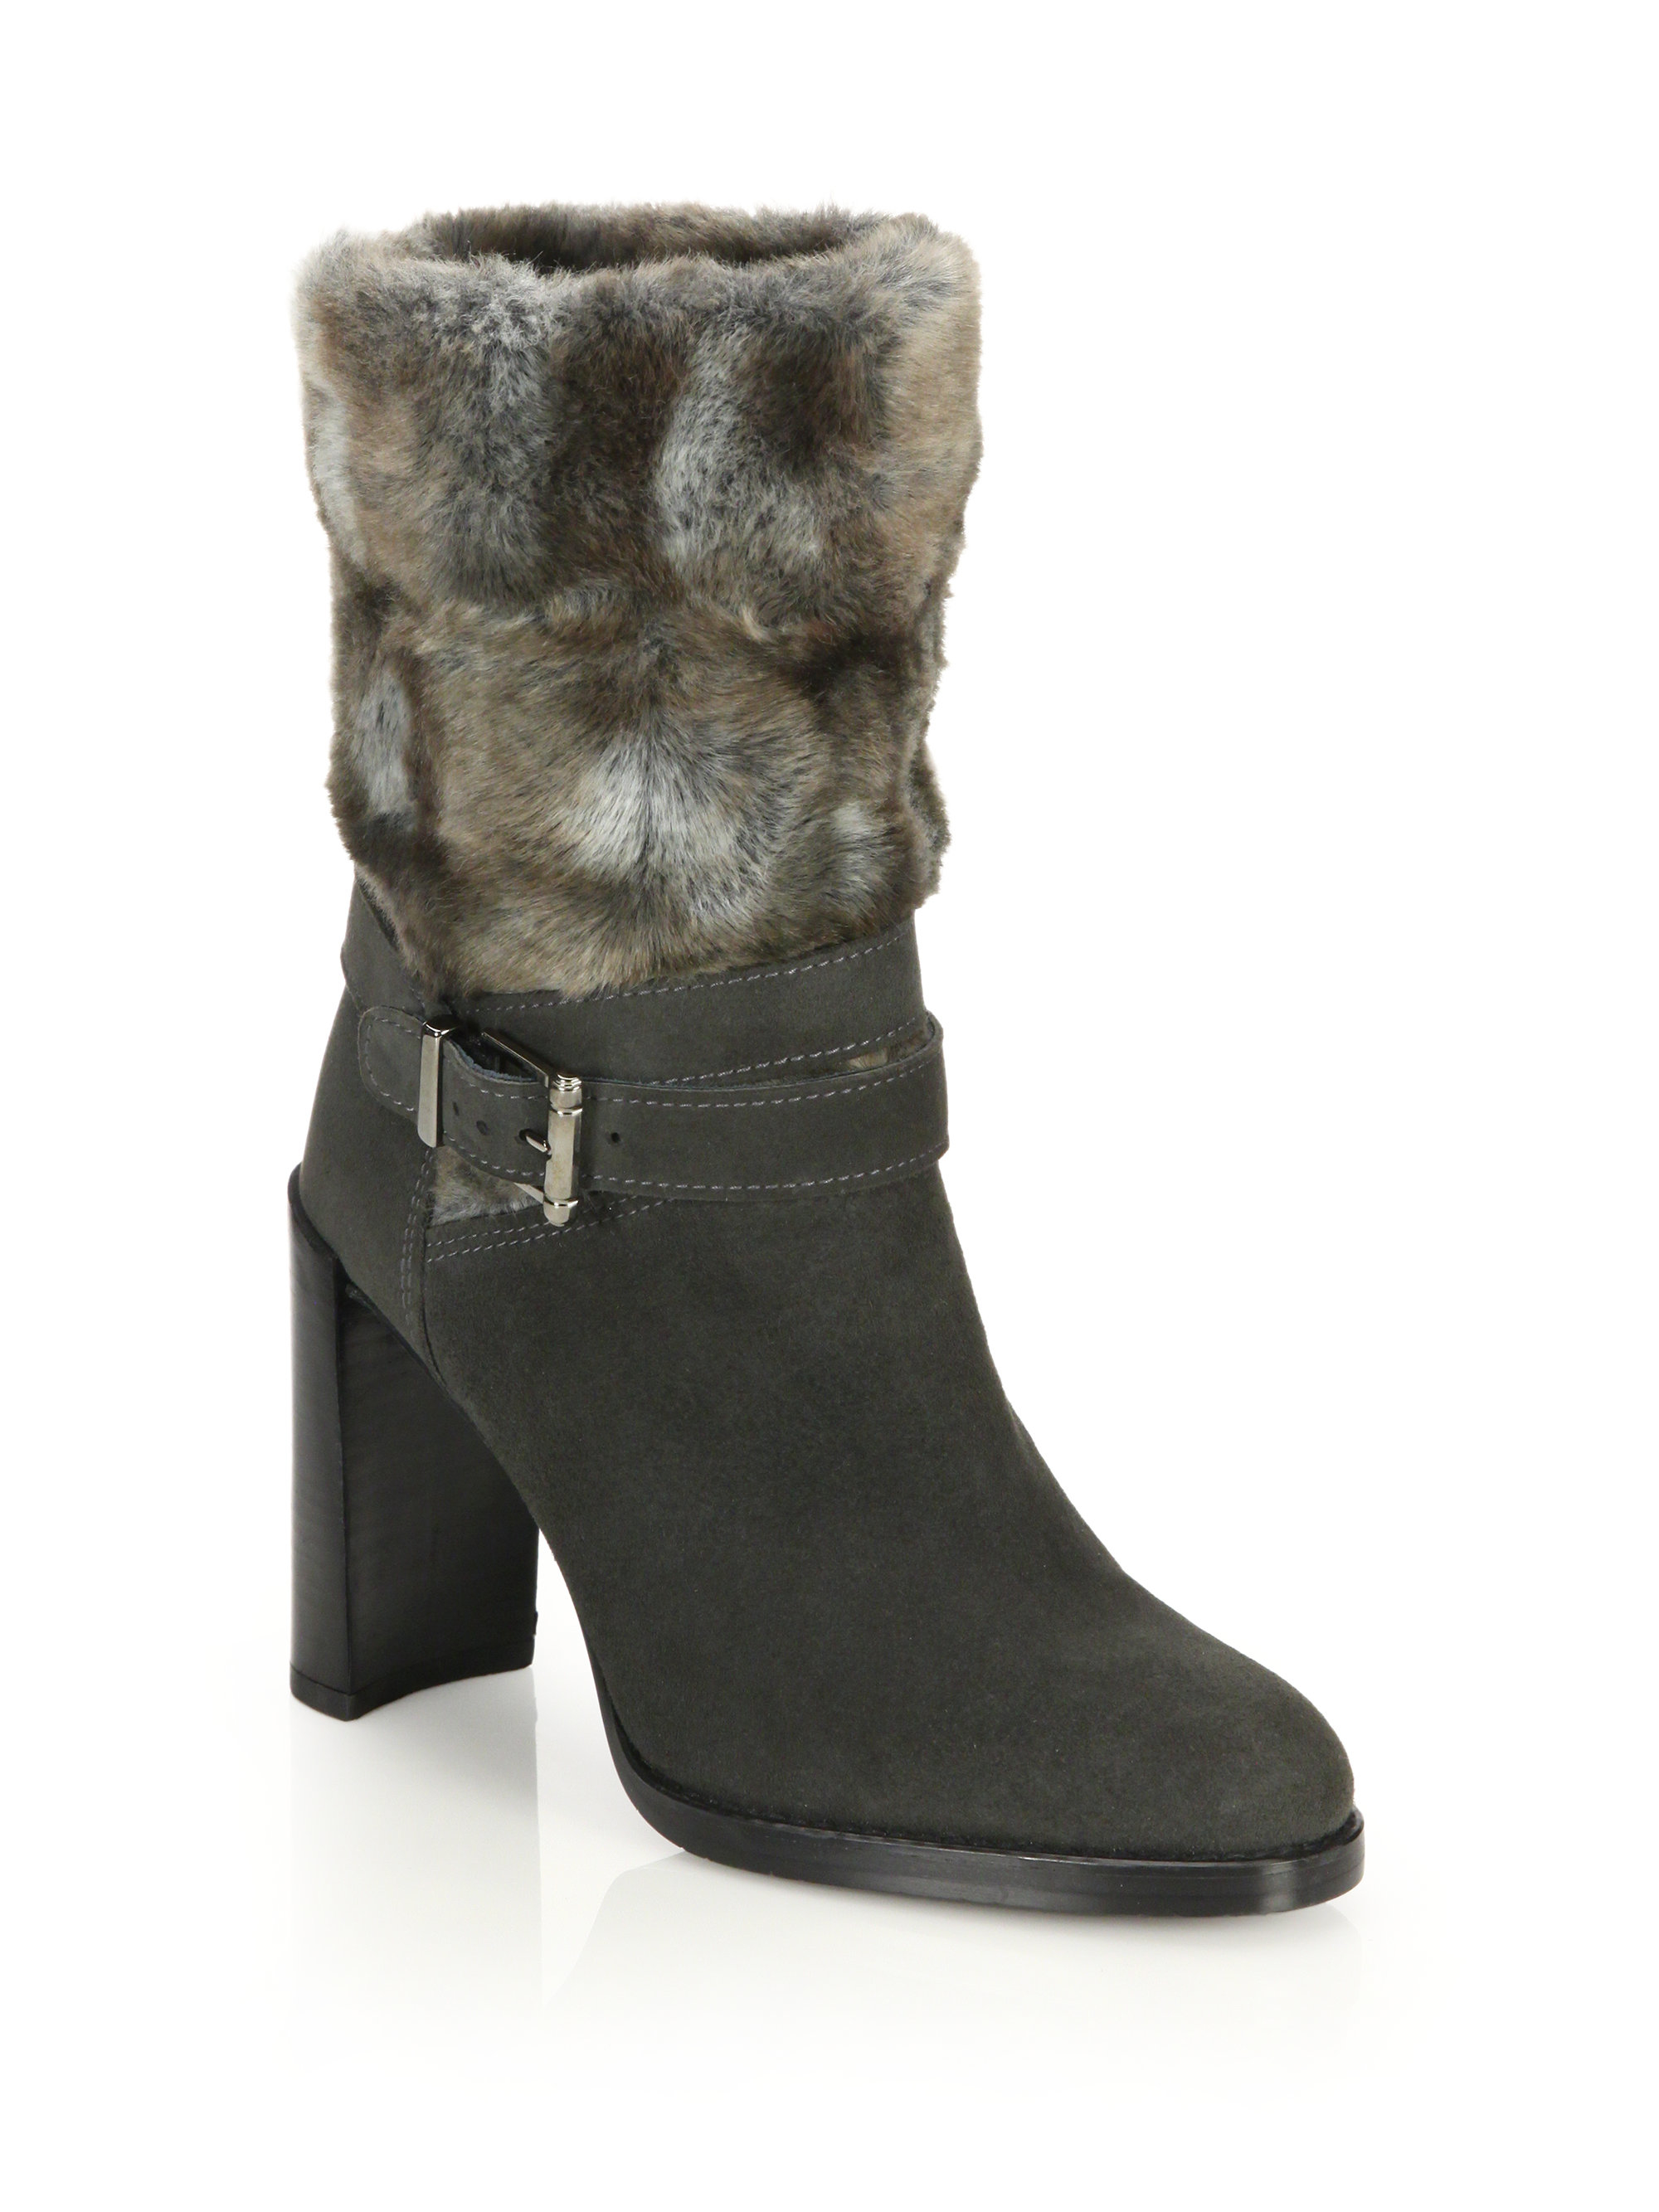 stuart weitzman furstup suede faux fur boots in green lyst